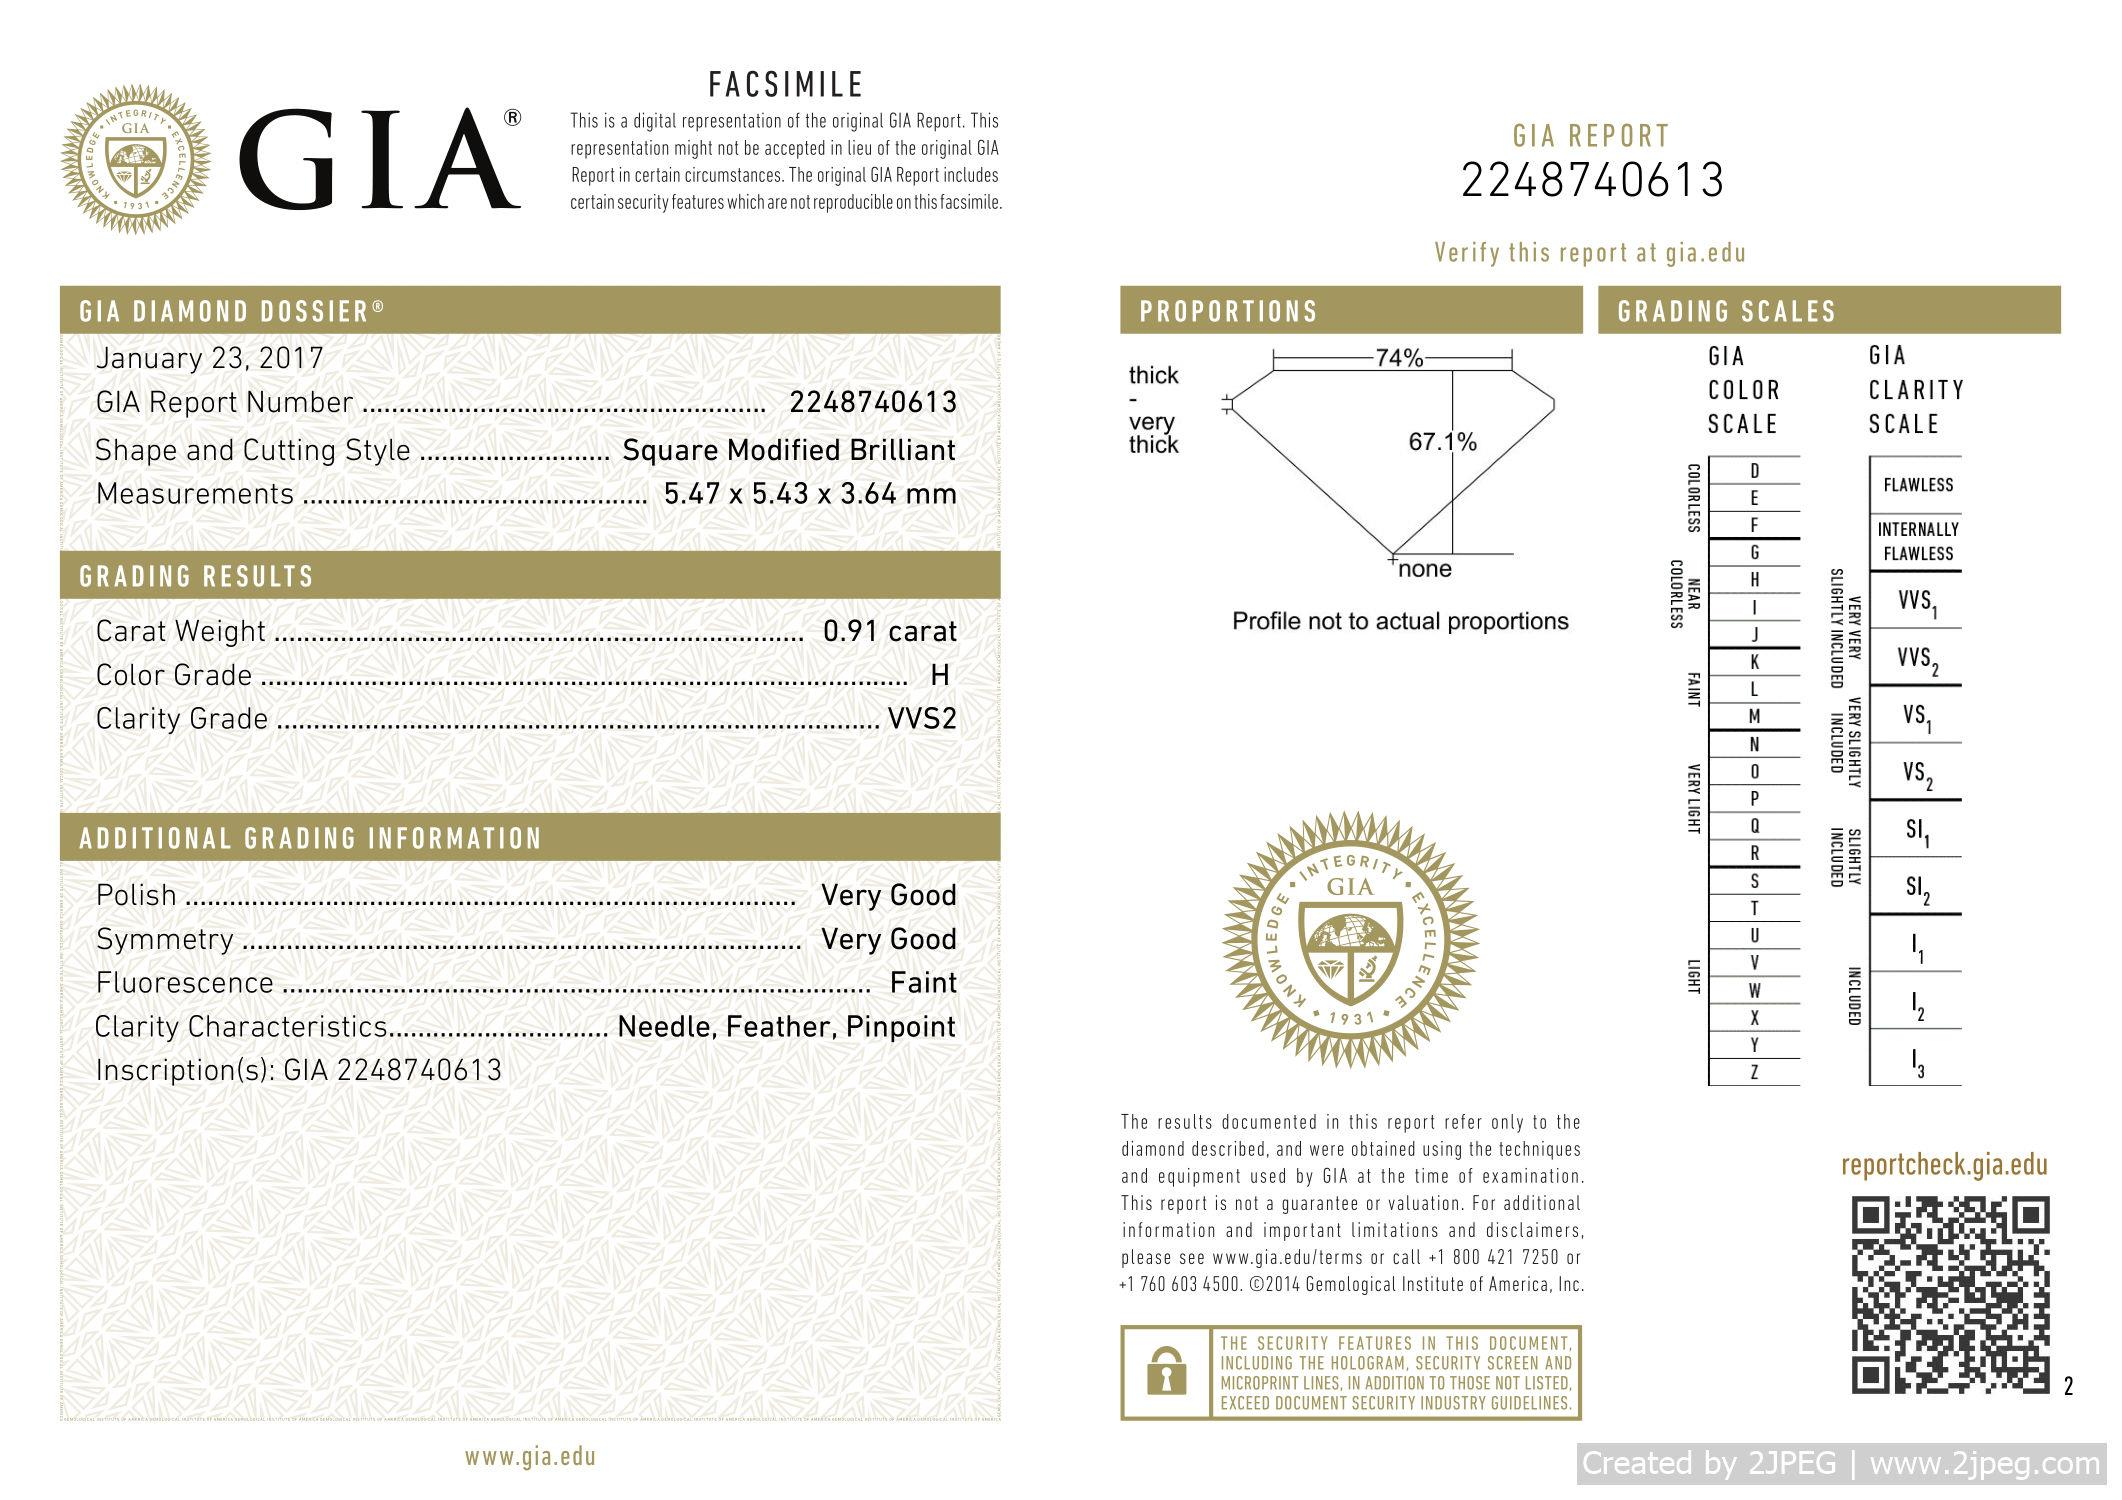 This is a 0.91 carat princess shape, H color, VVS2 clarity natural diamond accompanied by a GIA grading report.